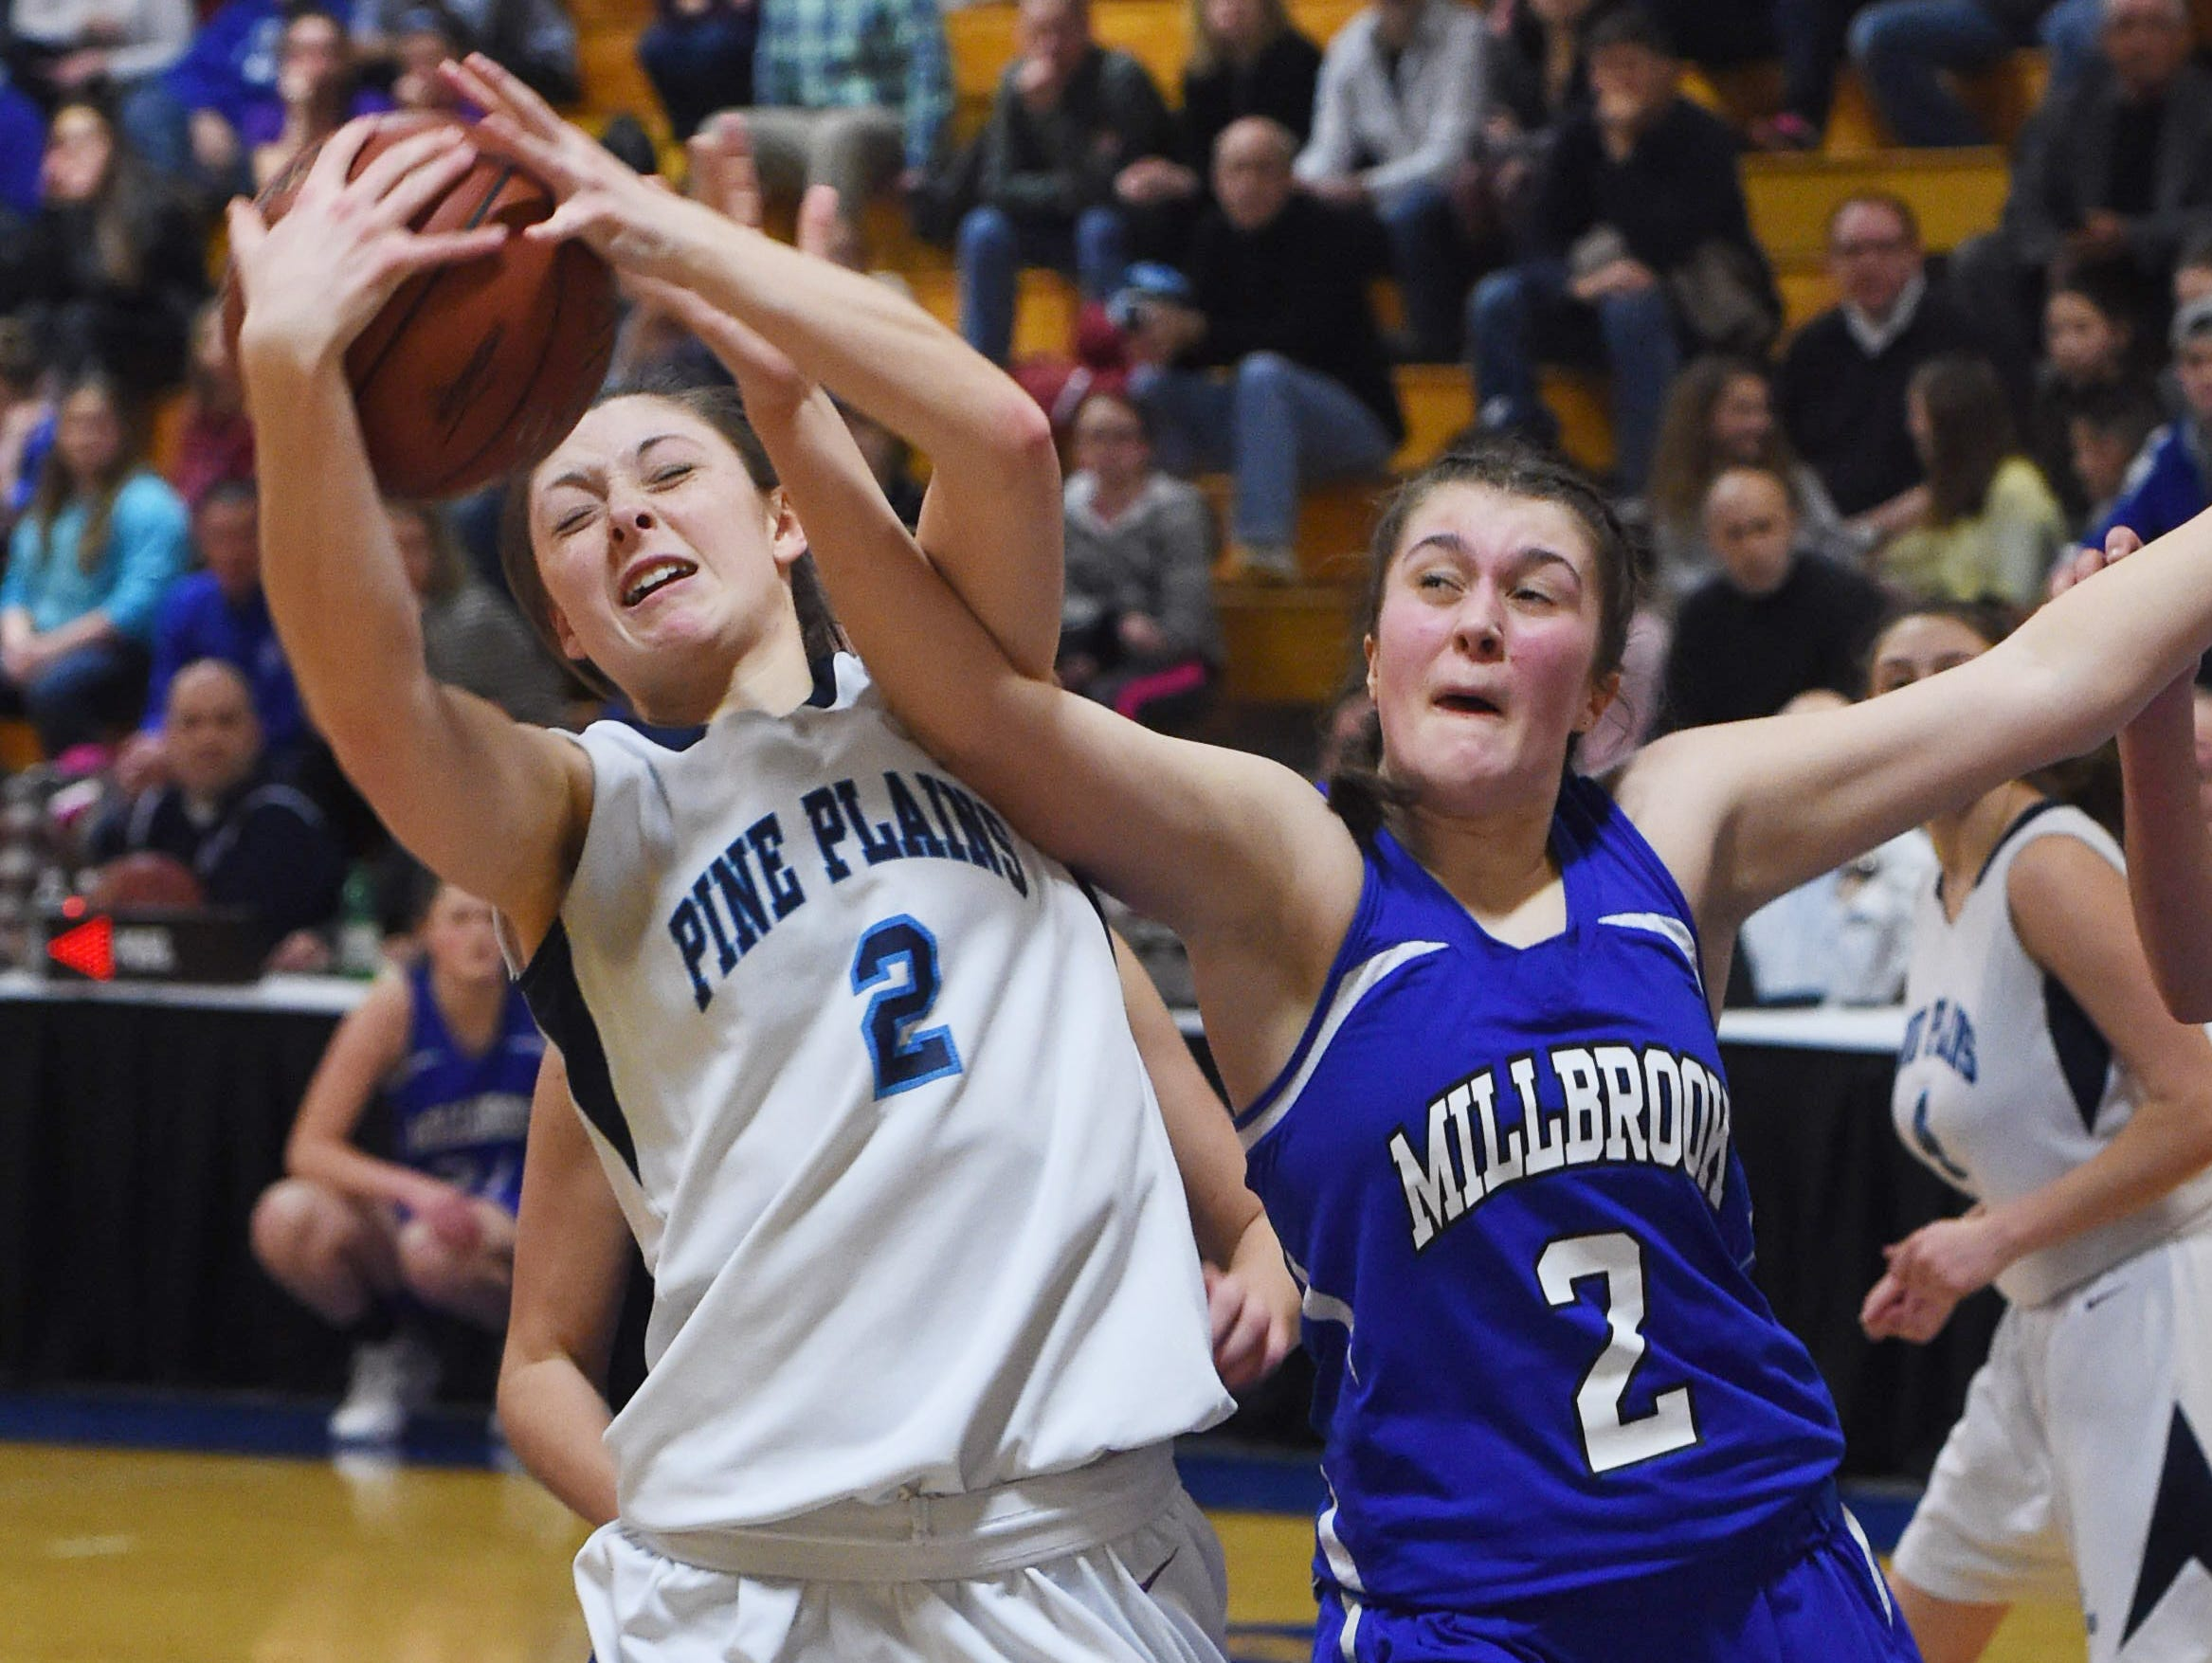 Pine Plains' Haley Strang, left, wretches a rebound away from Millbrook's Hannah Fisher, right, during Friday's Section 9 championship game at Mount Saint Mary College in Newburgh.